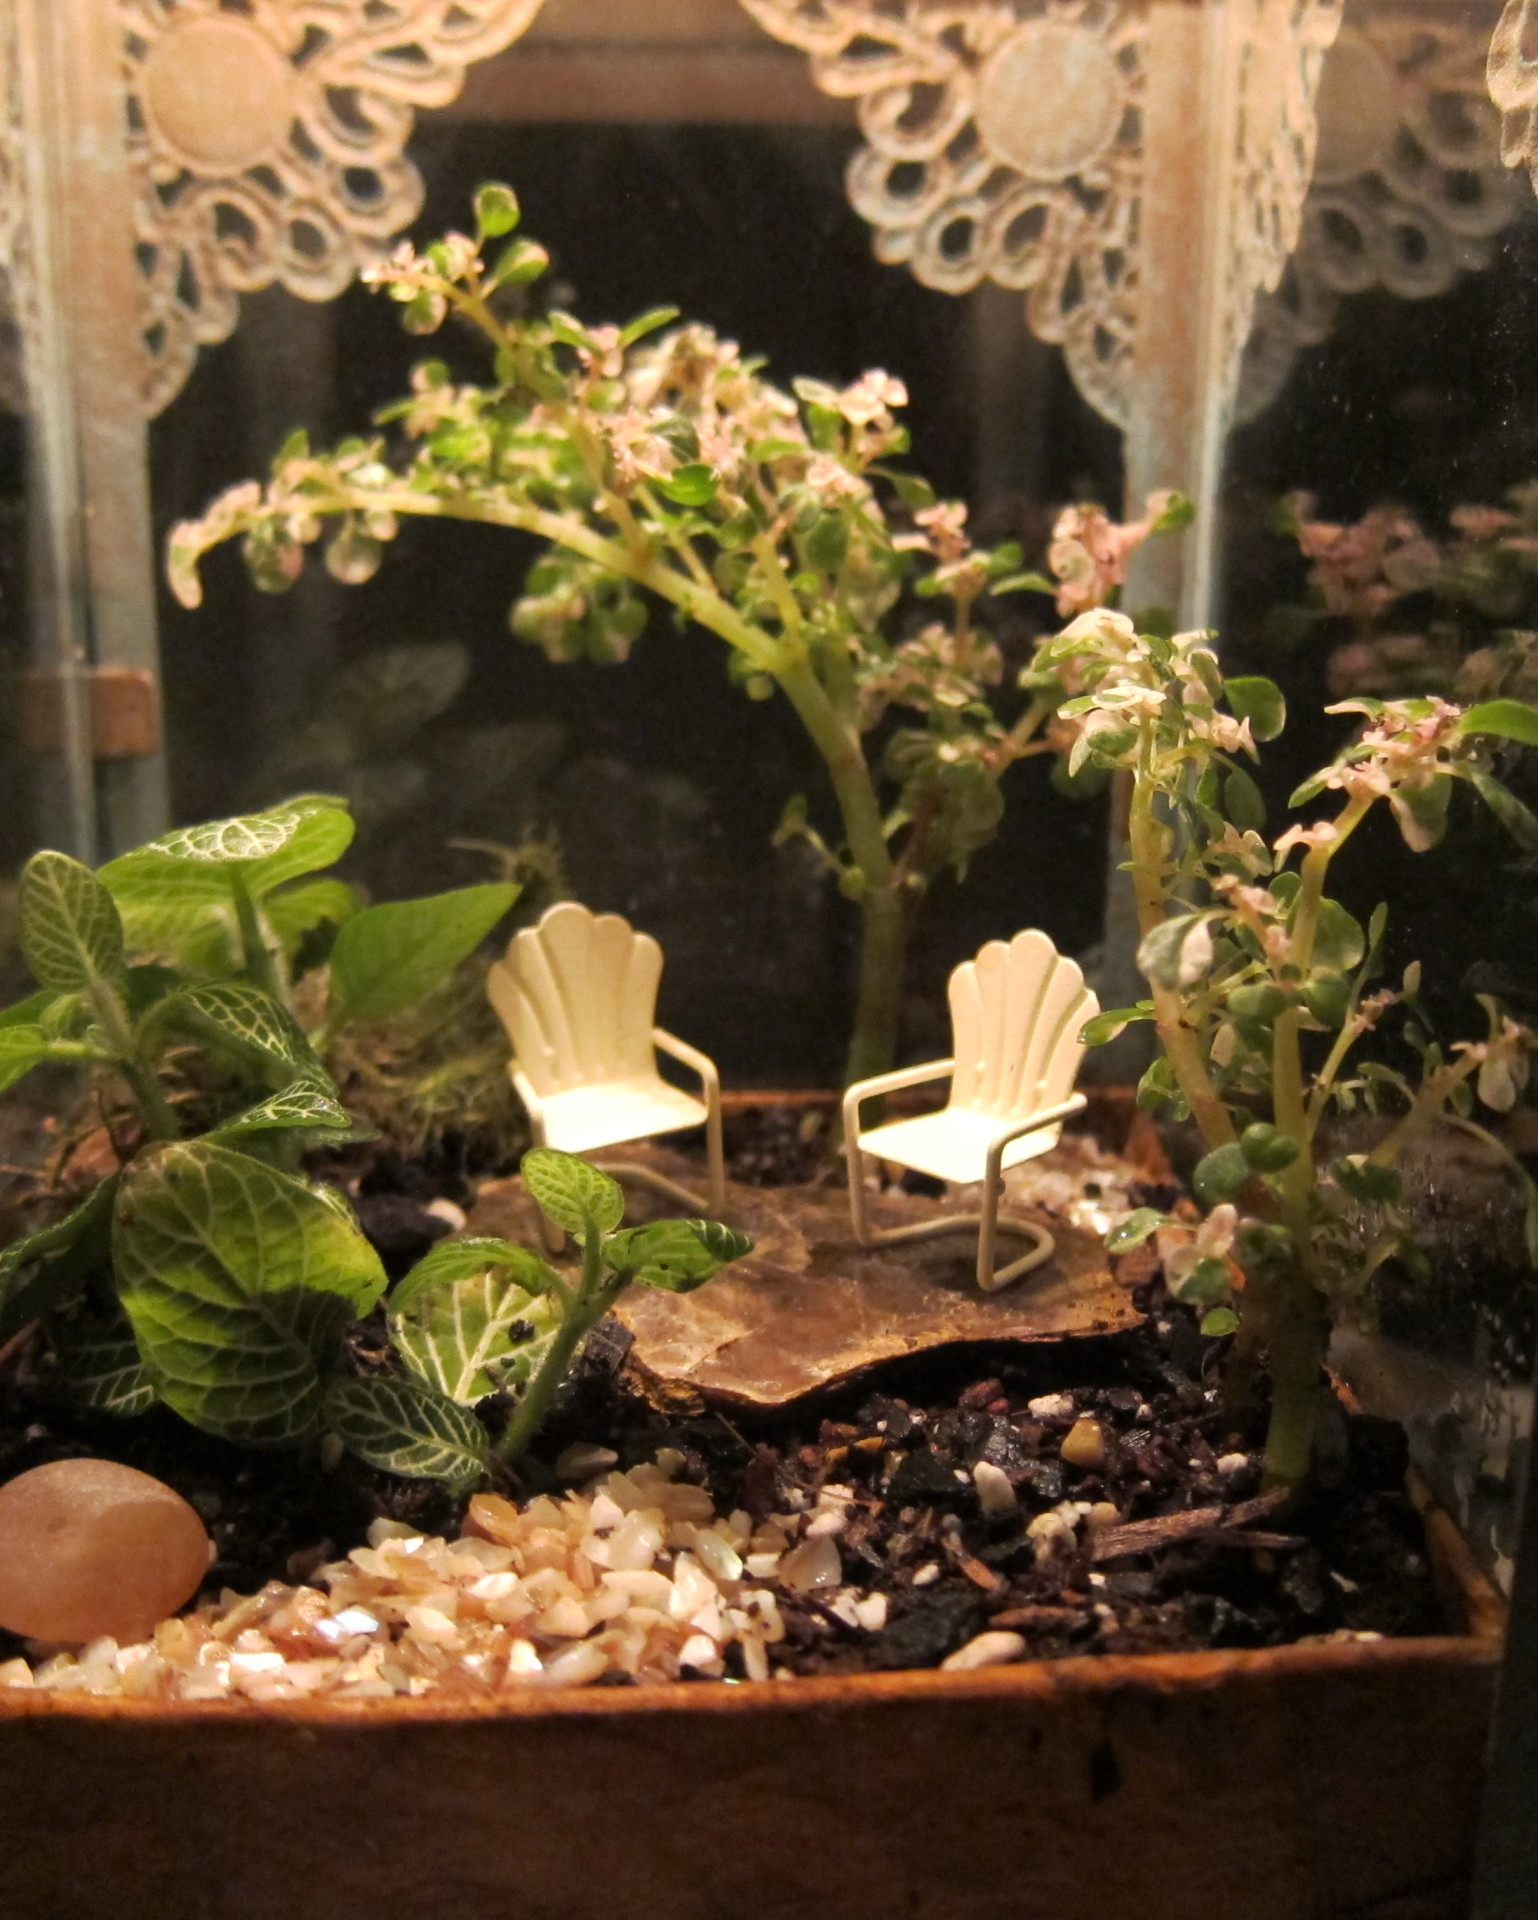 The Art of Making Terrariums